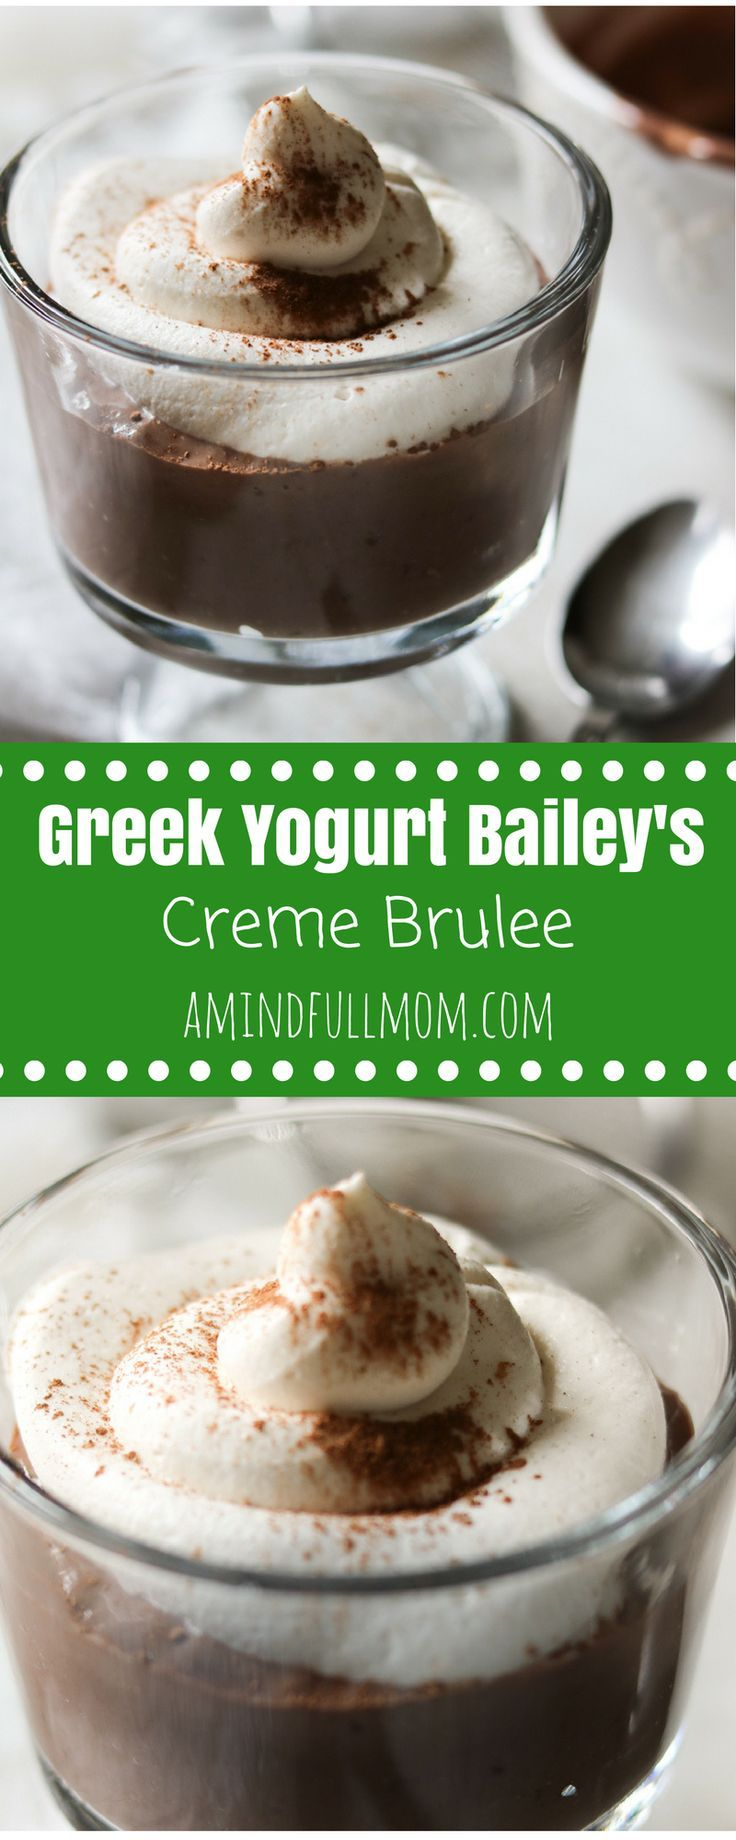 Bailey's Chocolate Mousse: A simple, lighted up version of chocolate mousse that has been spiked with irish liquor and espresso. #dessert #glutenfree #chocolate #lightenedup #greekyogurt via @amindfullmom